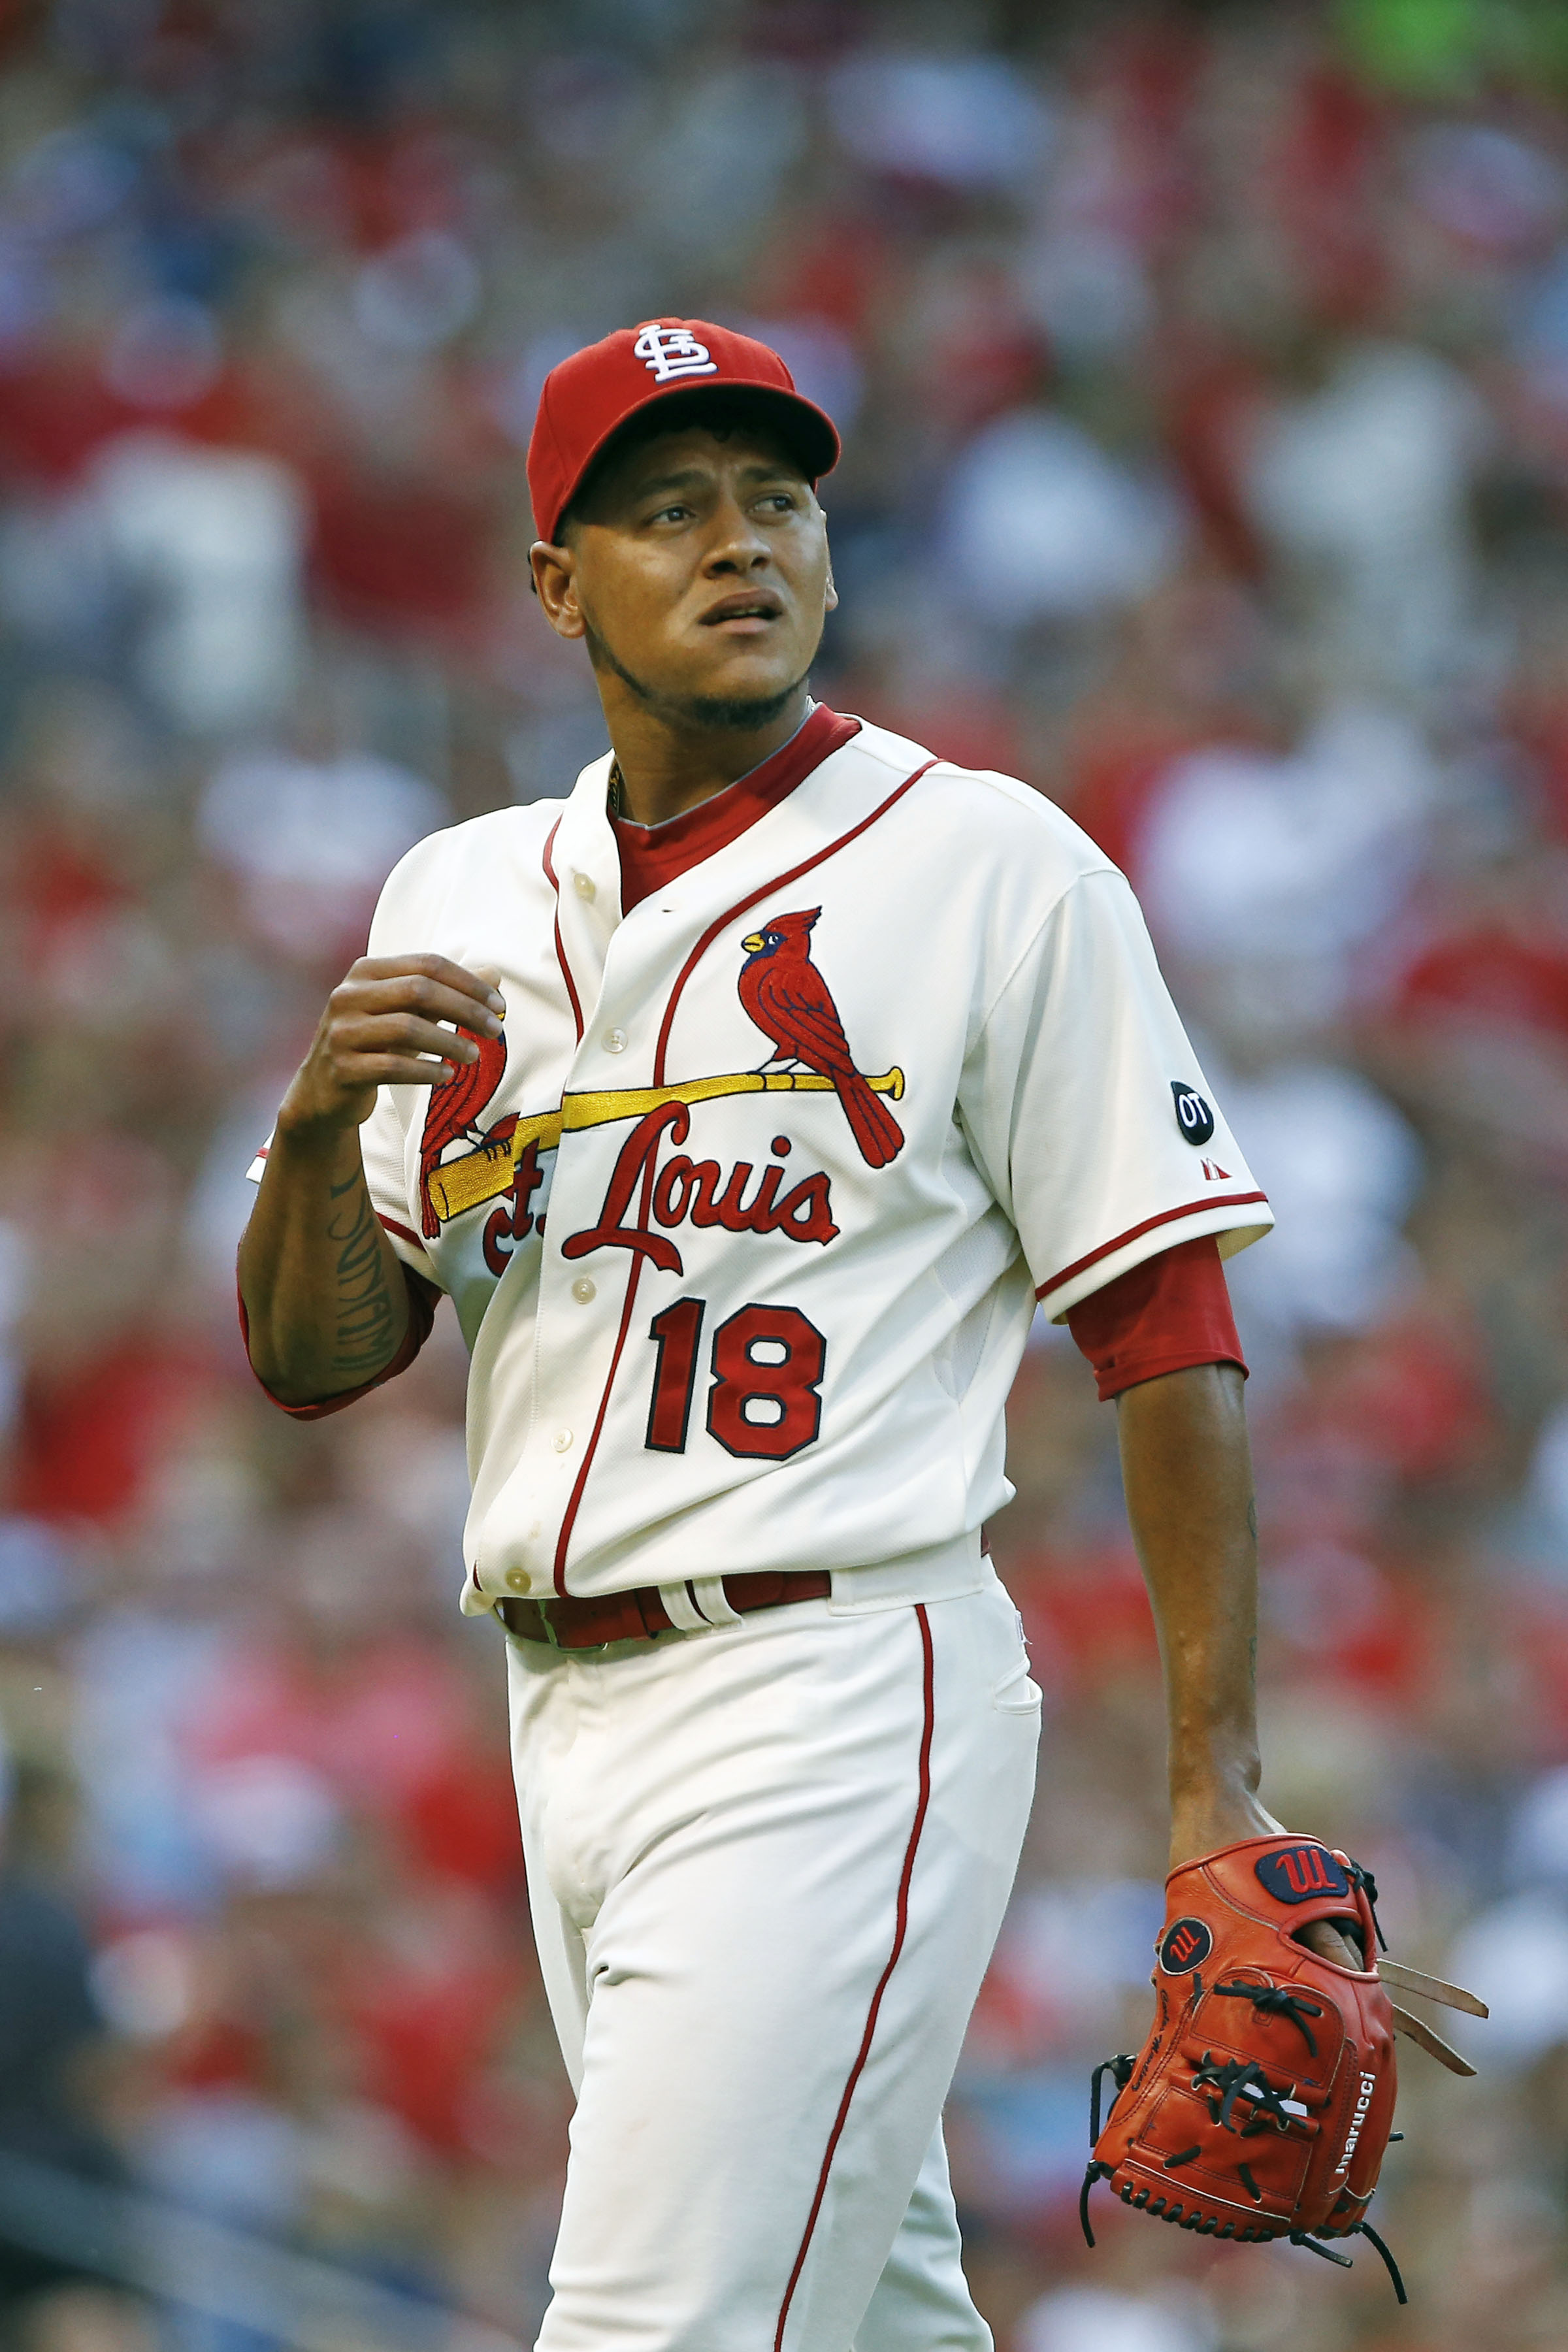 St. Louis Cardinals starting pitcher Carlos Martinez walks off the field after striking out Atlanta Braves' Shelby Miller to get out of a bases loaded jam during the second inning of a baseball game Saturday, July 25, 2015, in St. Louis. (AP Photo/Billy H